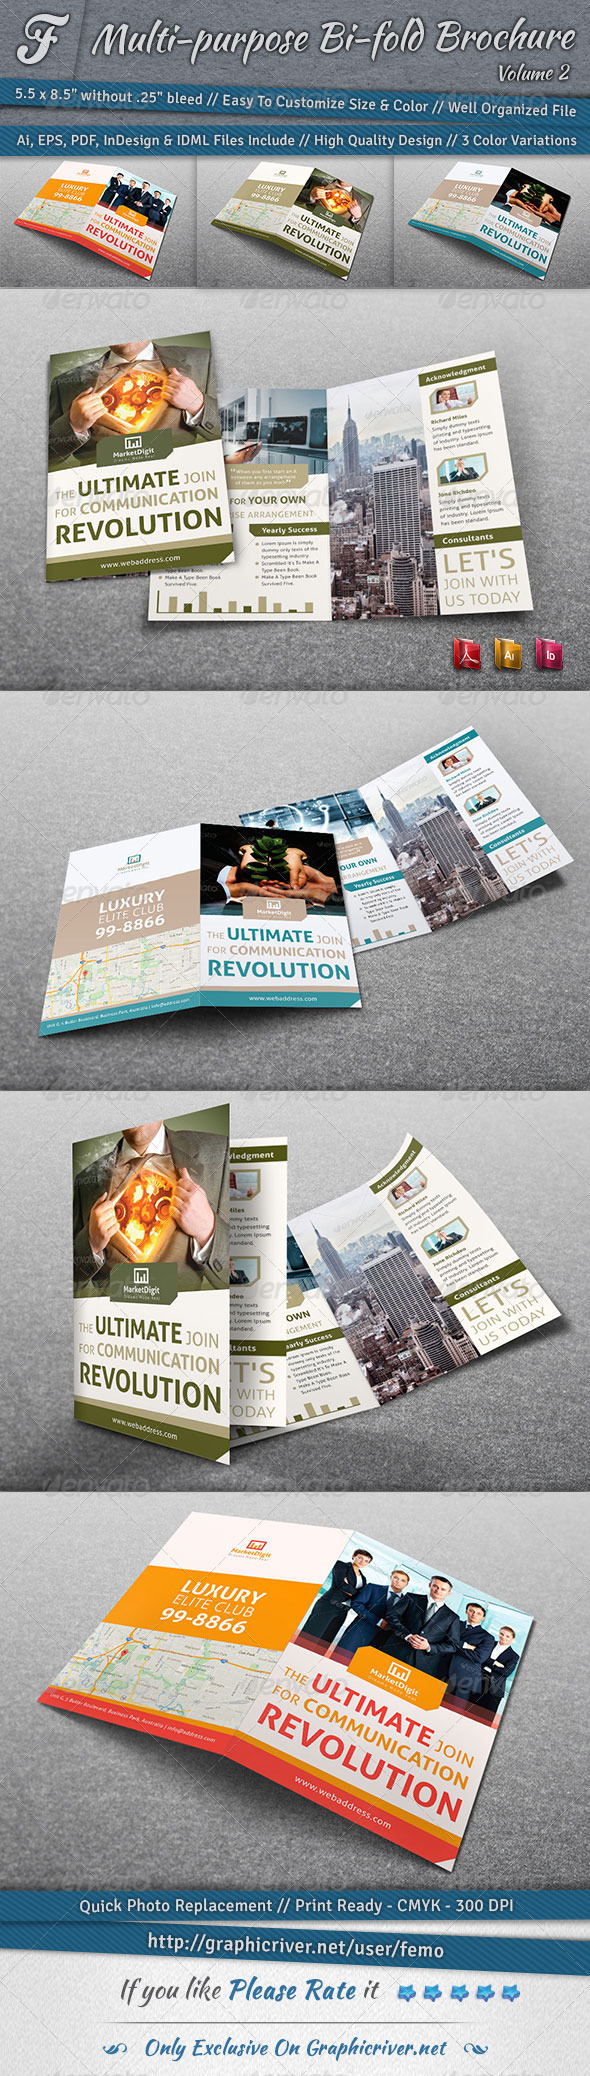 GraphicRiver Multi-purpose Bi-fold Brochure Volume 2 7087689